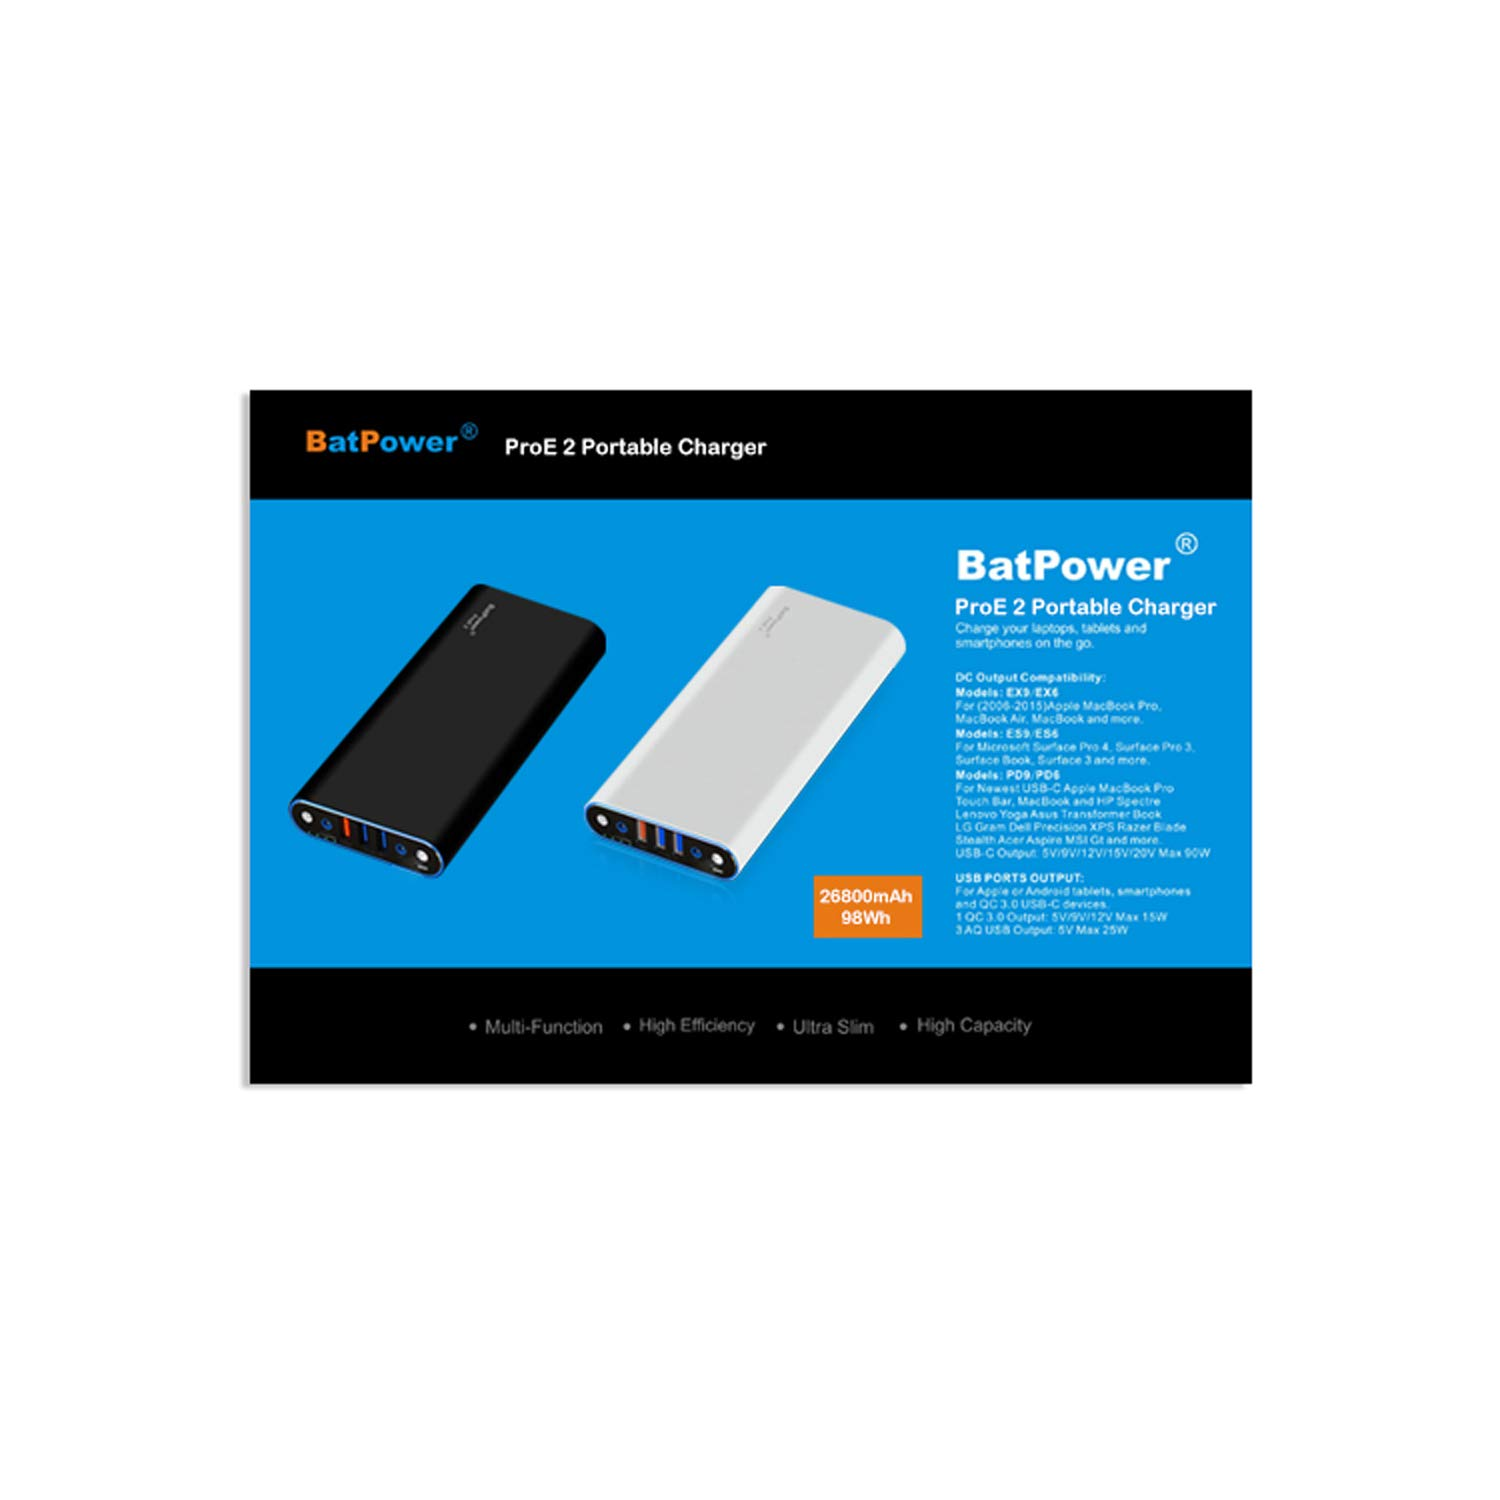 BatPower EM3 90W PD USB C Converter Work with ProE 2 Portable Charger Power Bank Charging for 2016 2017 to Current MacBook Pro 13 15 MacBook 12 HP X360 Dell XPS Razer Lenovo and More USB-C laptops